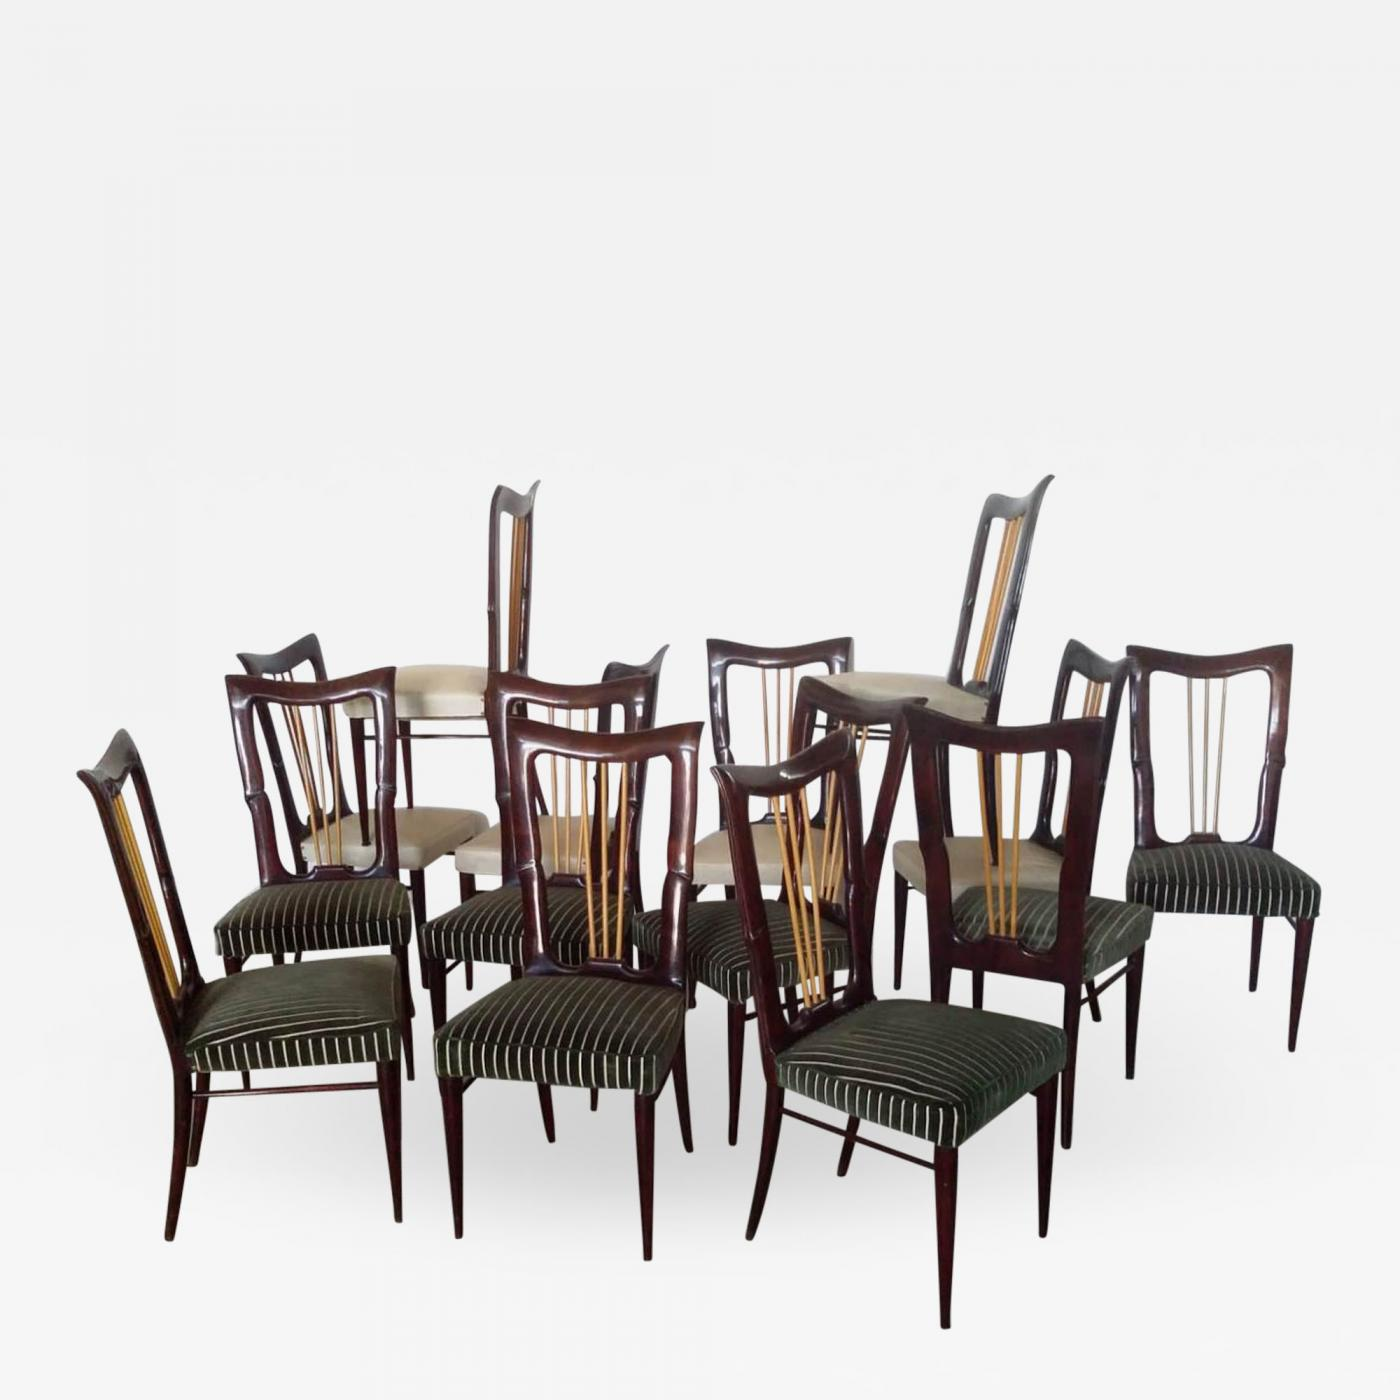 Italian Dining Chairs Osvaldo Borsani Set Of 14 Italian Dining Chairs C 1940s